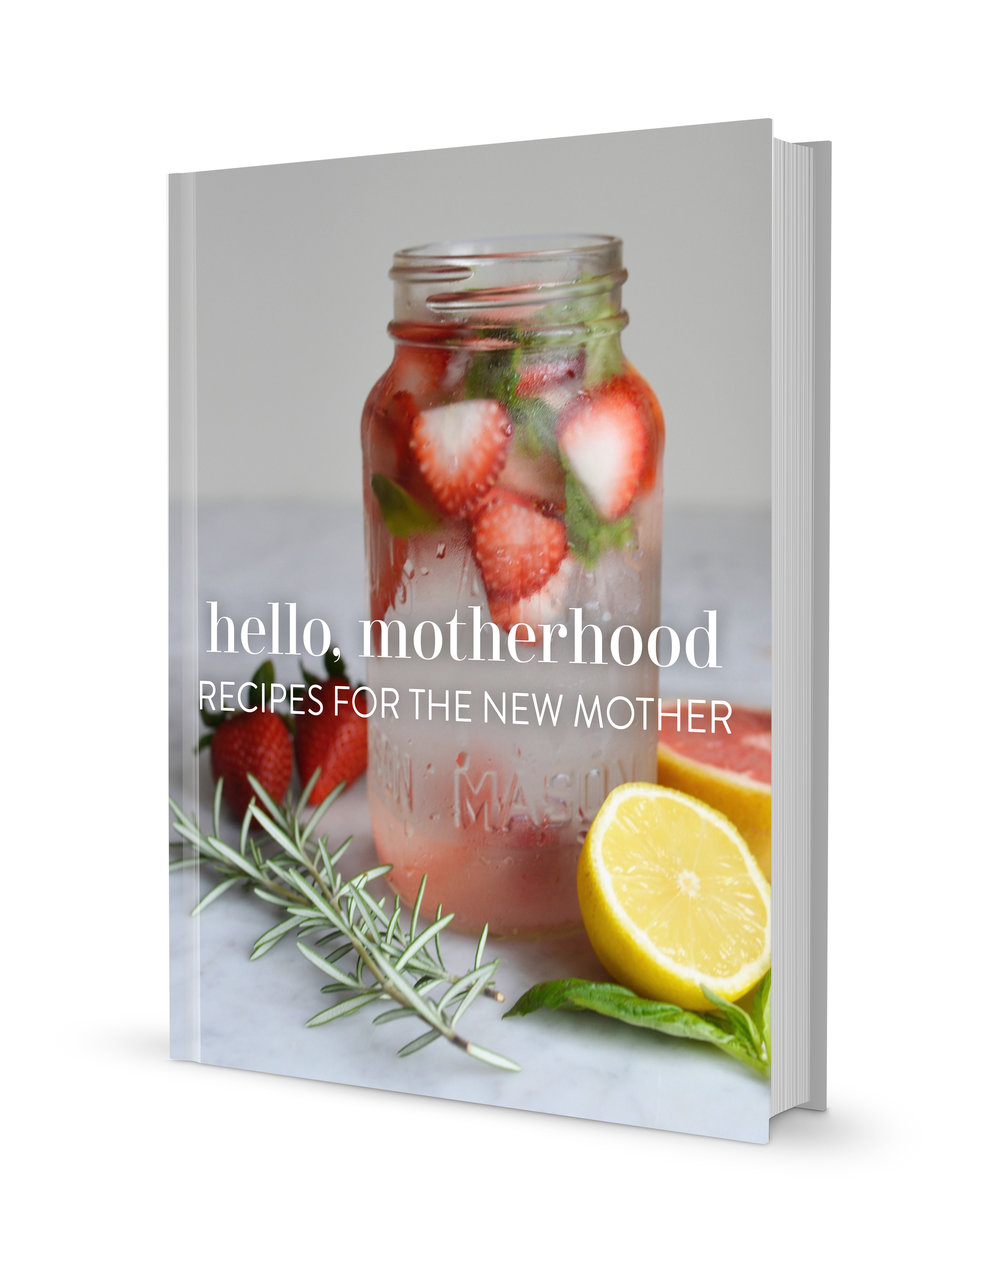 hello-motherhood-recipes-for-new-mother.jpg